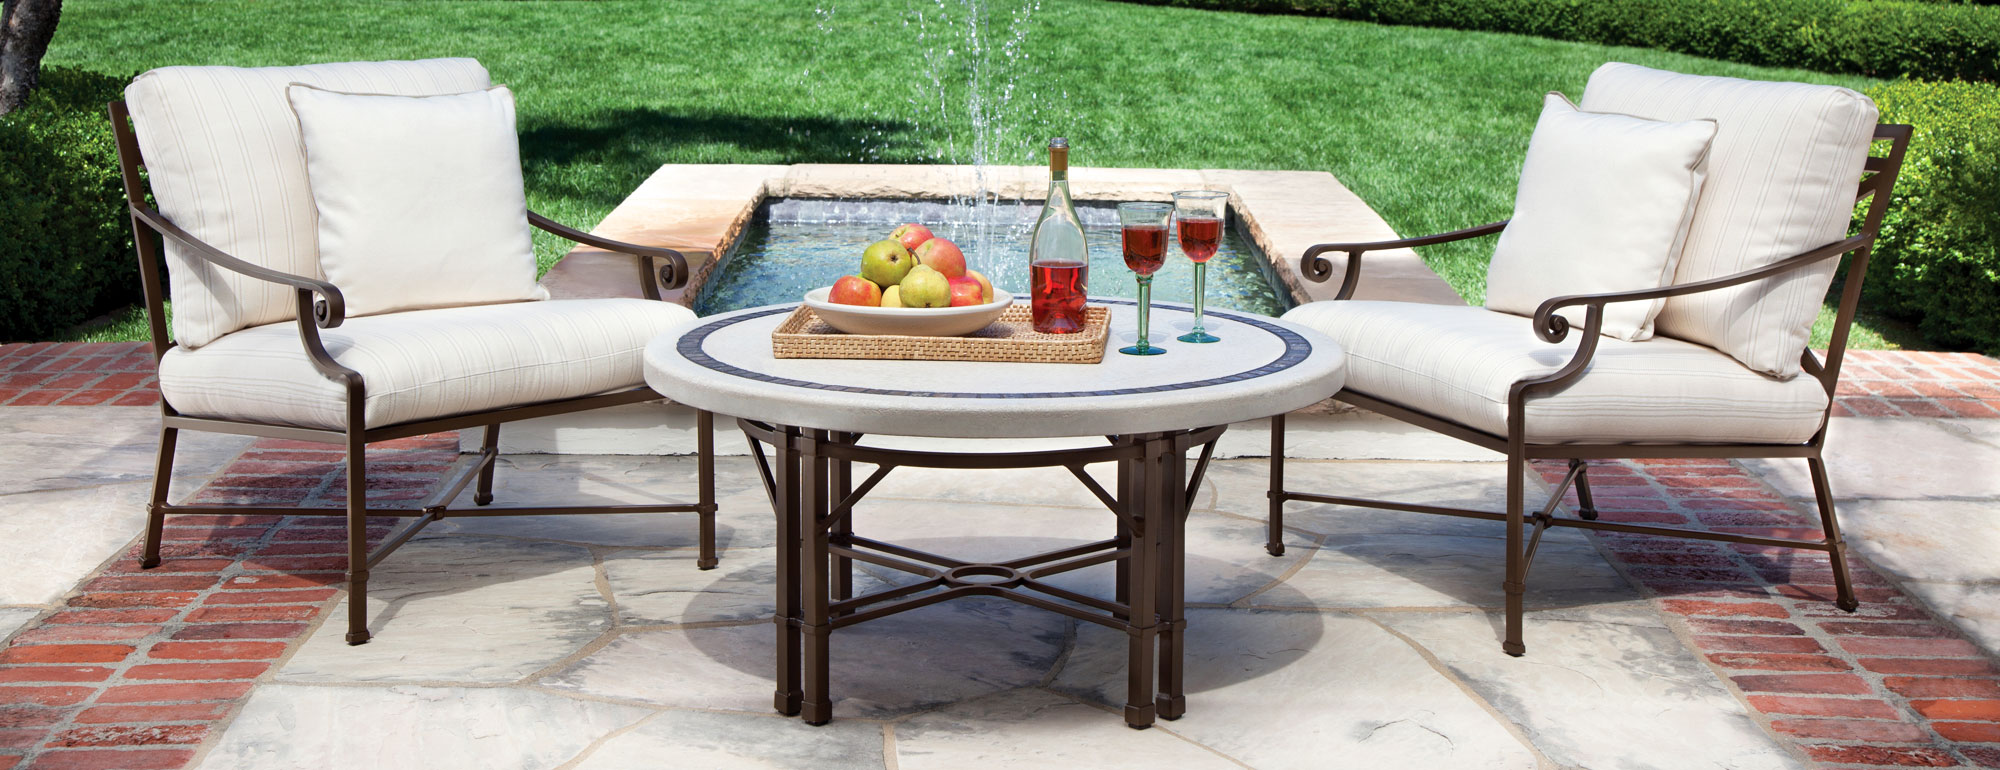 Patio Must Haves